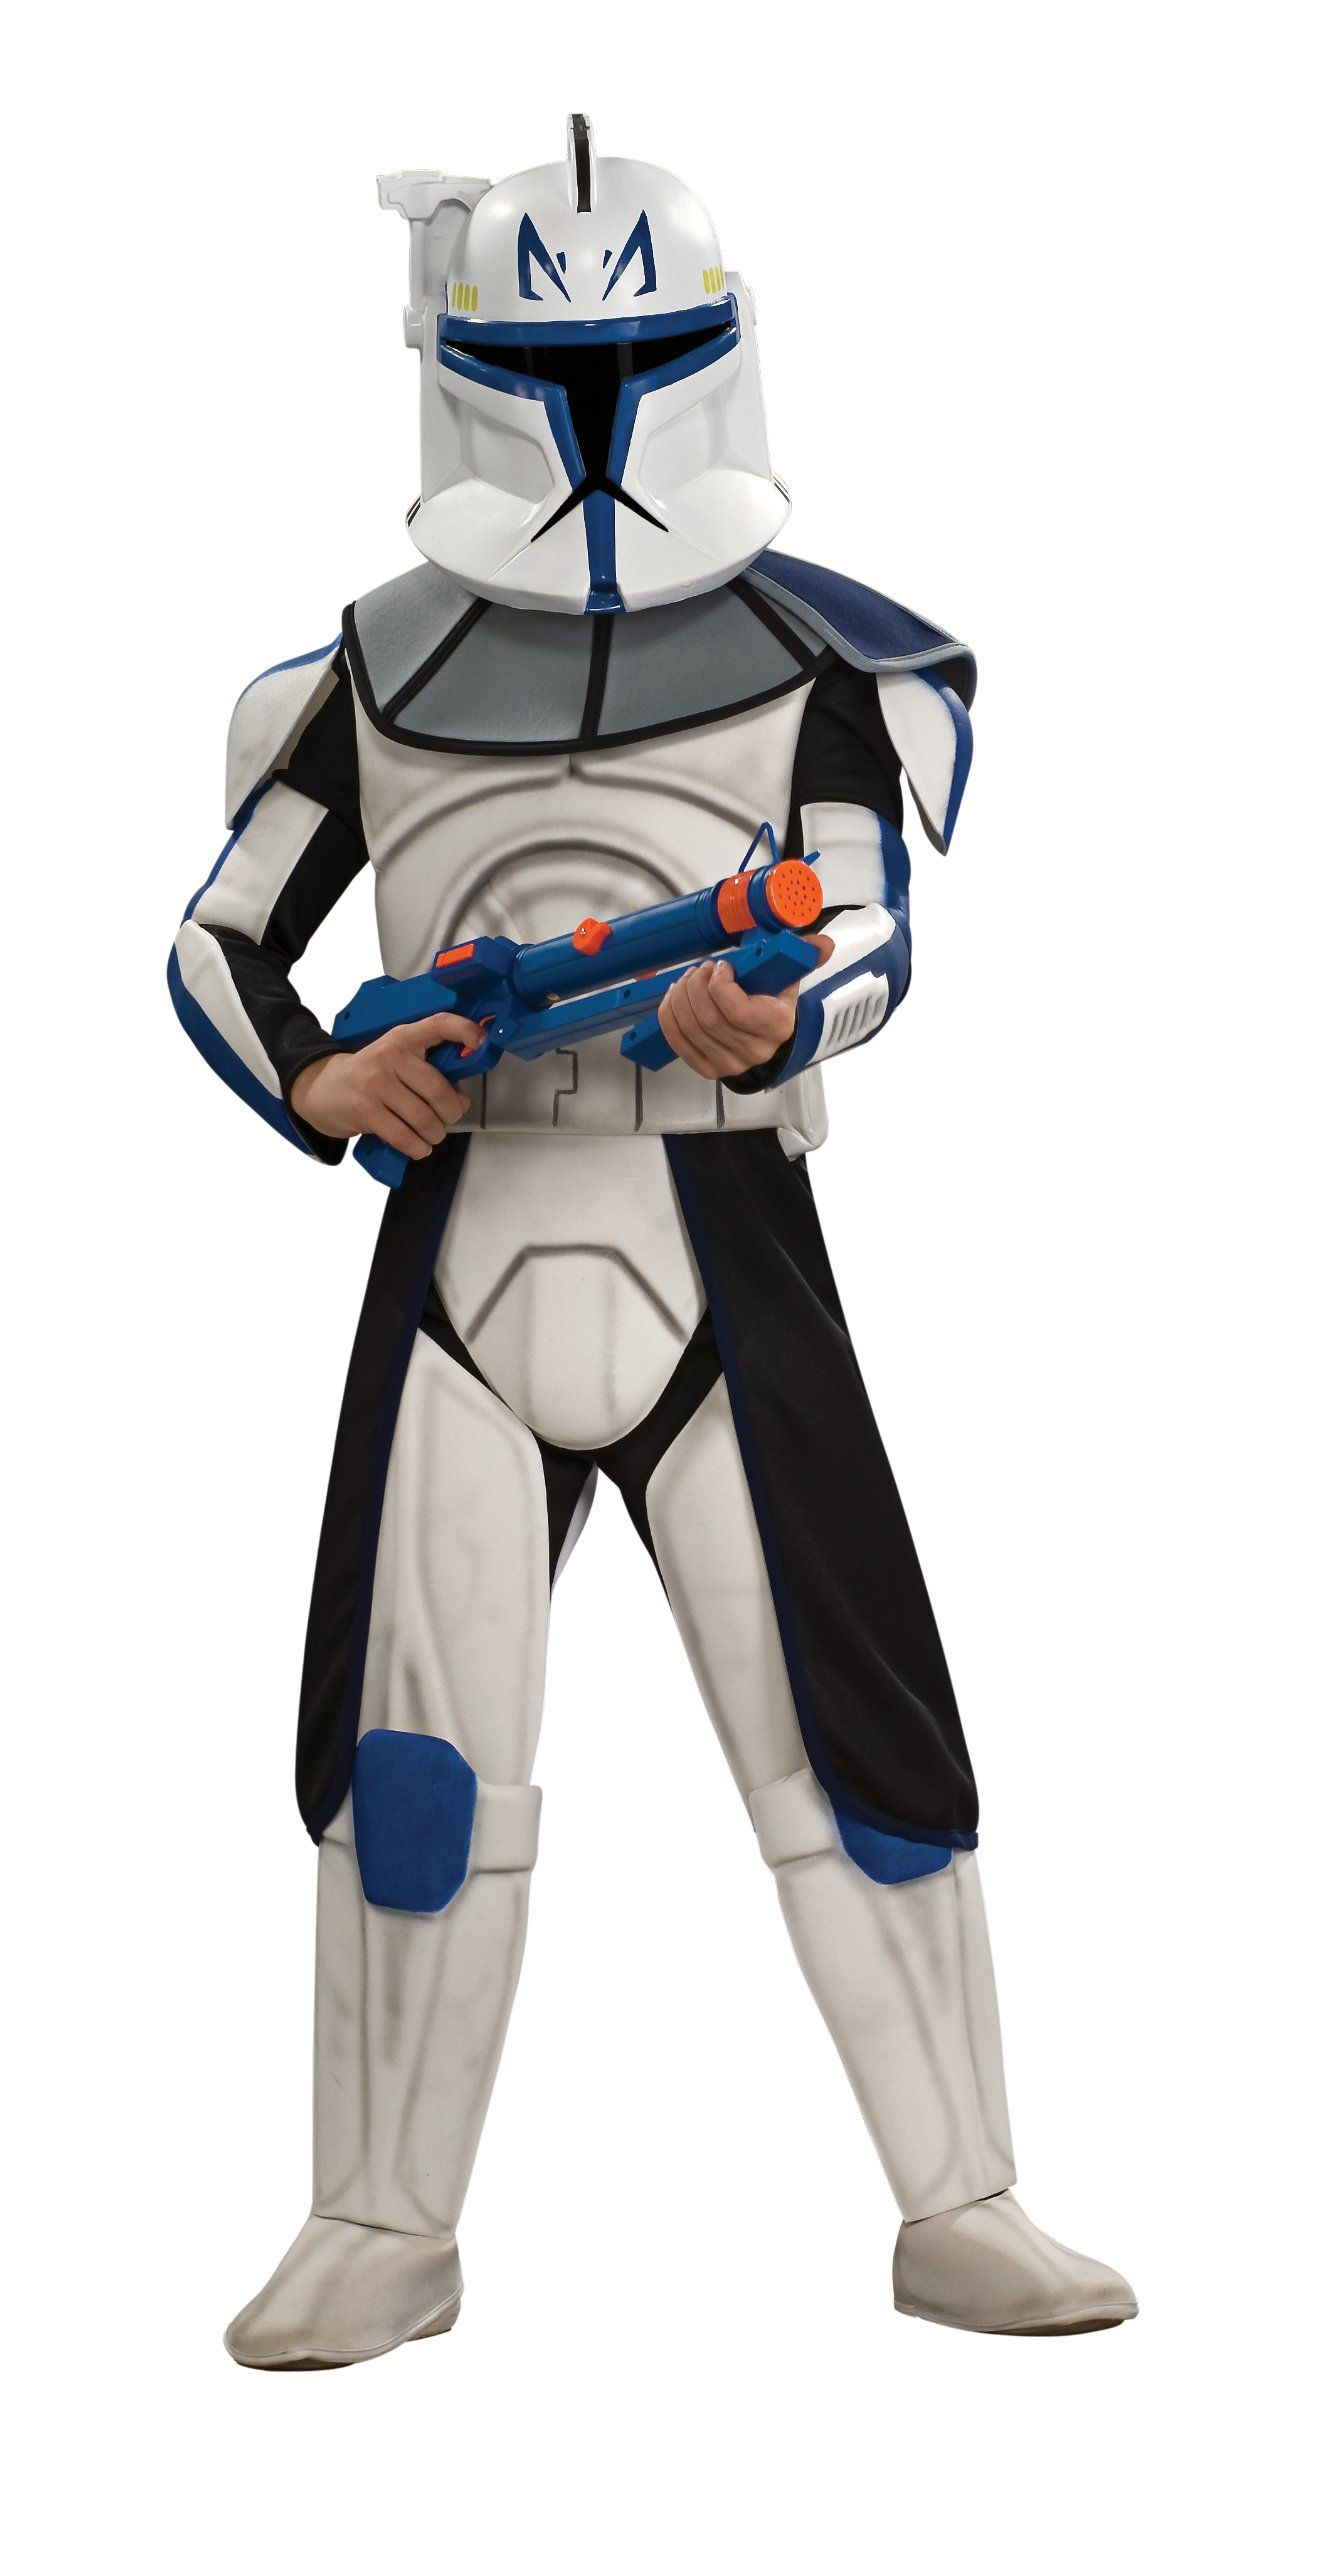 Star Wars The Clone Wars Child/'s Deluxe Costume And Mask Cad Bane Costume Med...